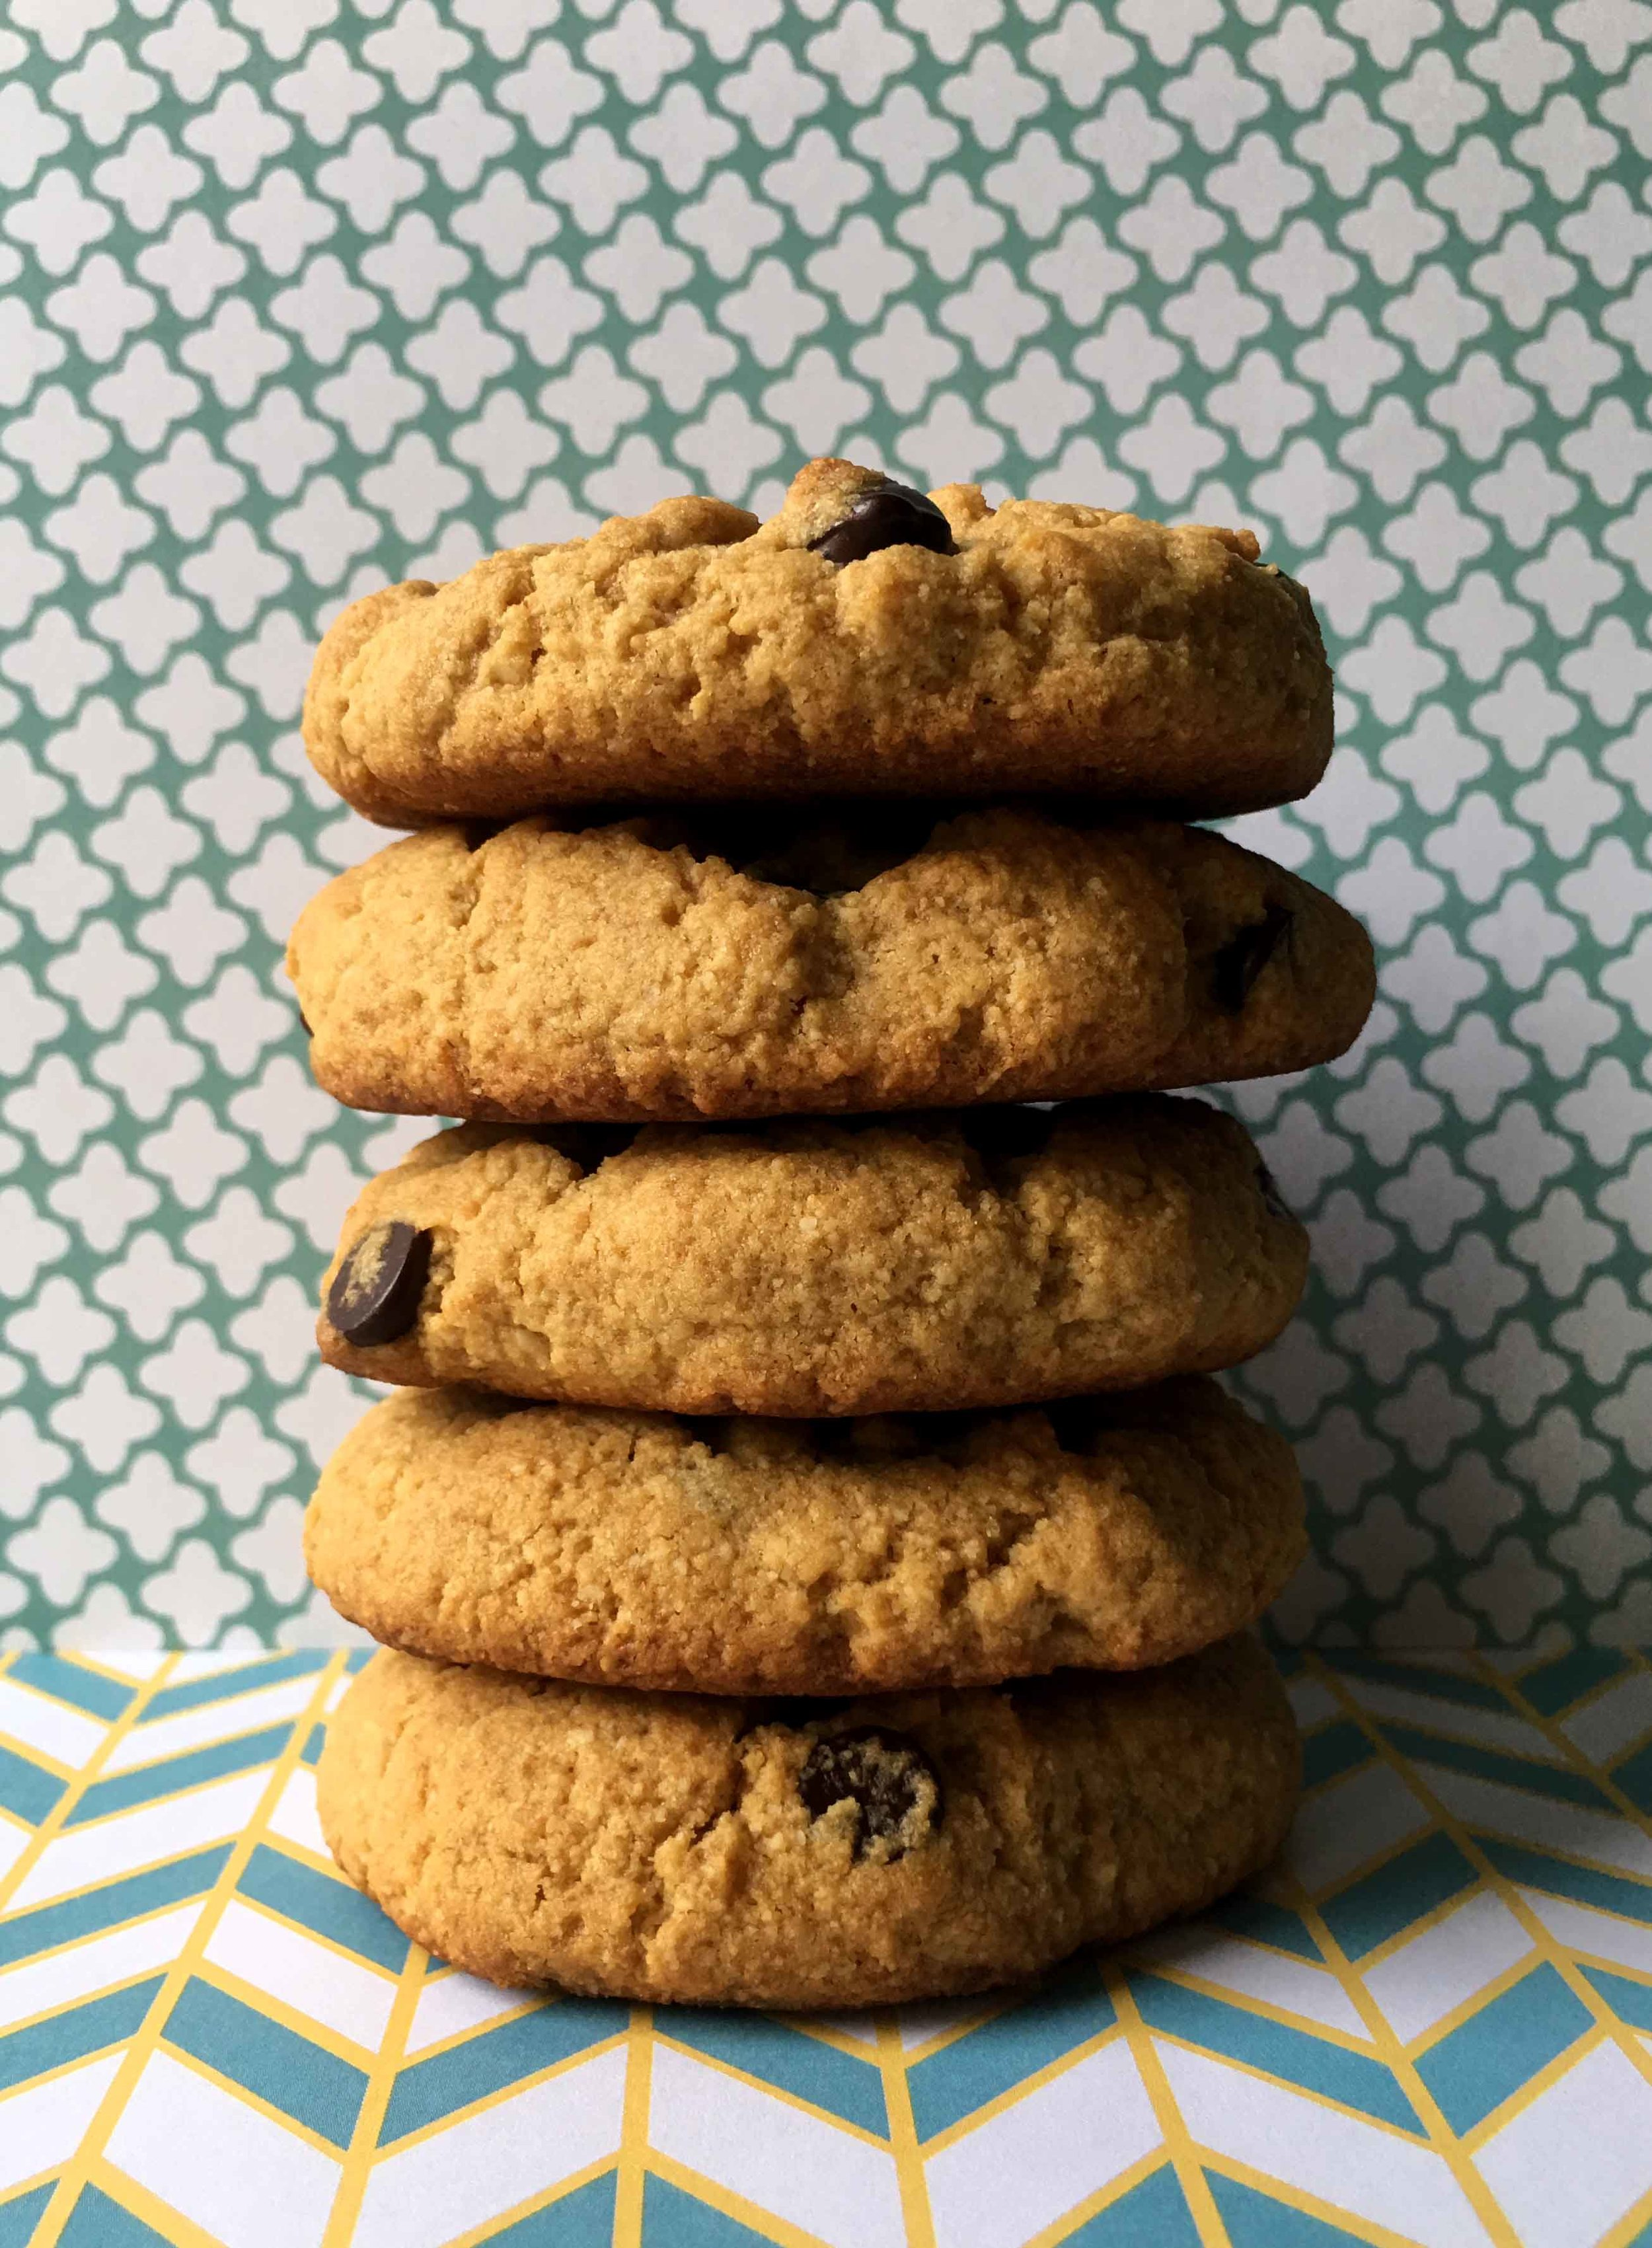 Low Carb Keto Peanut Butter Chocolate Chip Cookies Recipe